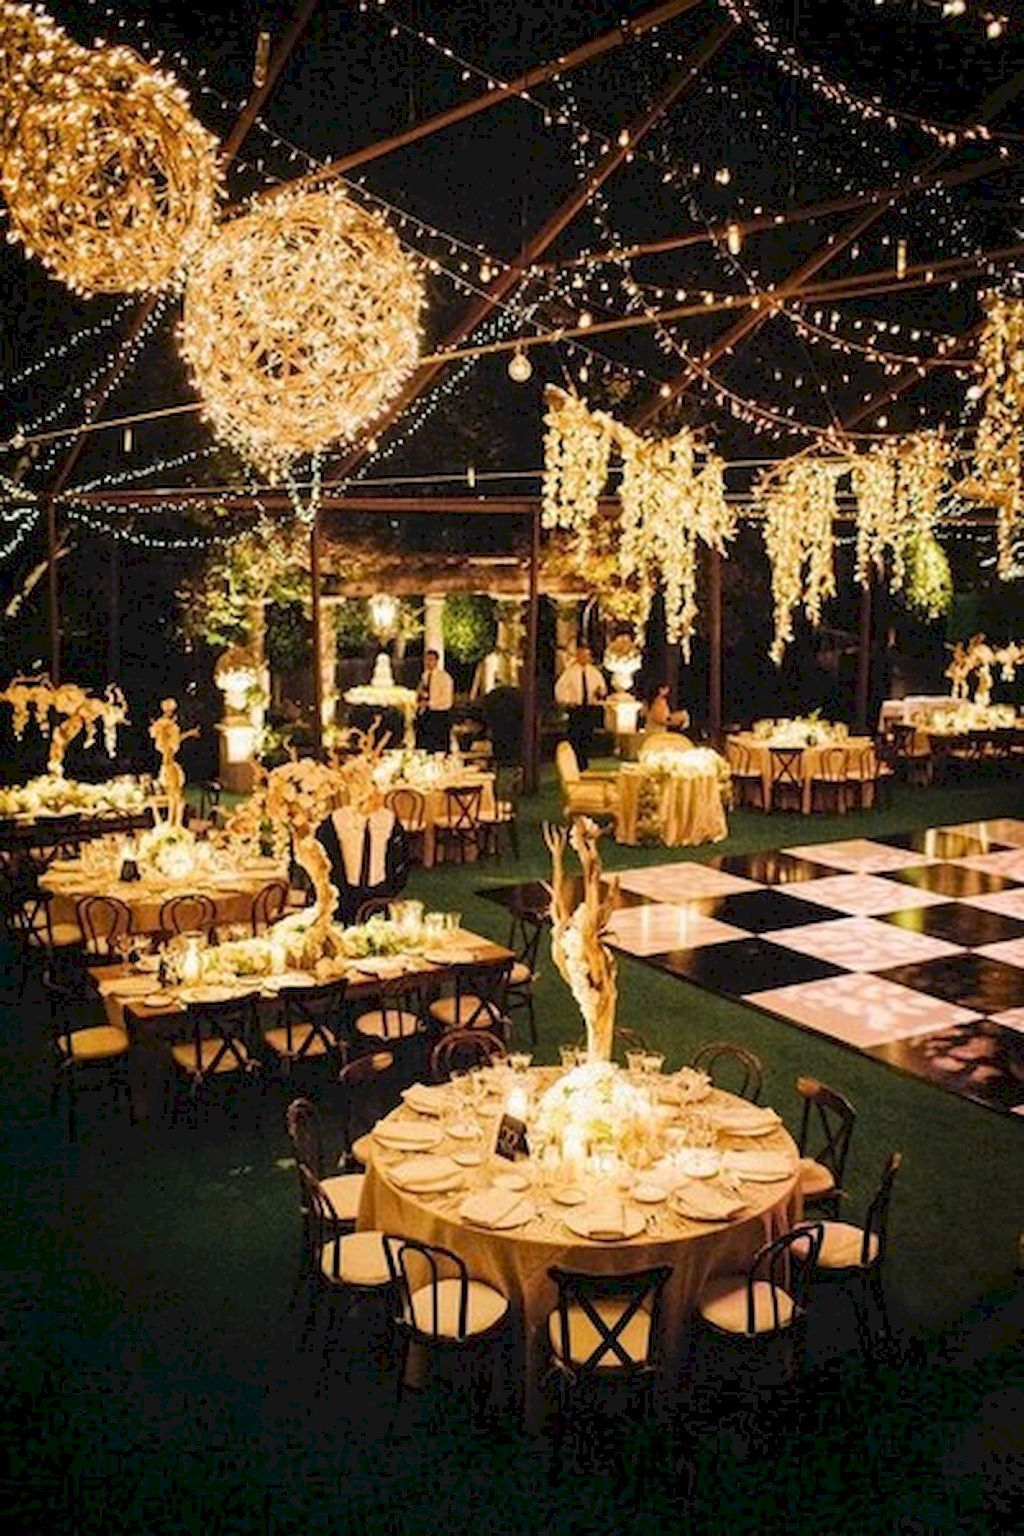 Awesome 56 inexpensive backyard wedding decor ideas https awesome 56 inexpensive backyard wedding decor ideas httpsbitecloth2017 junglespirit Image collections